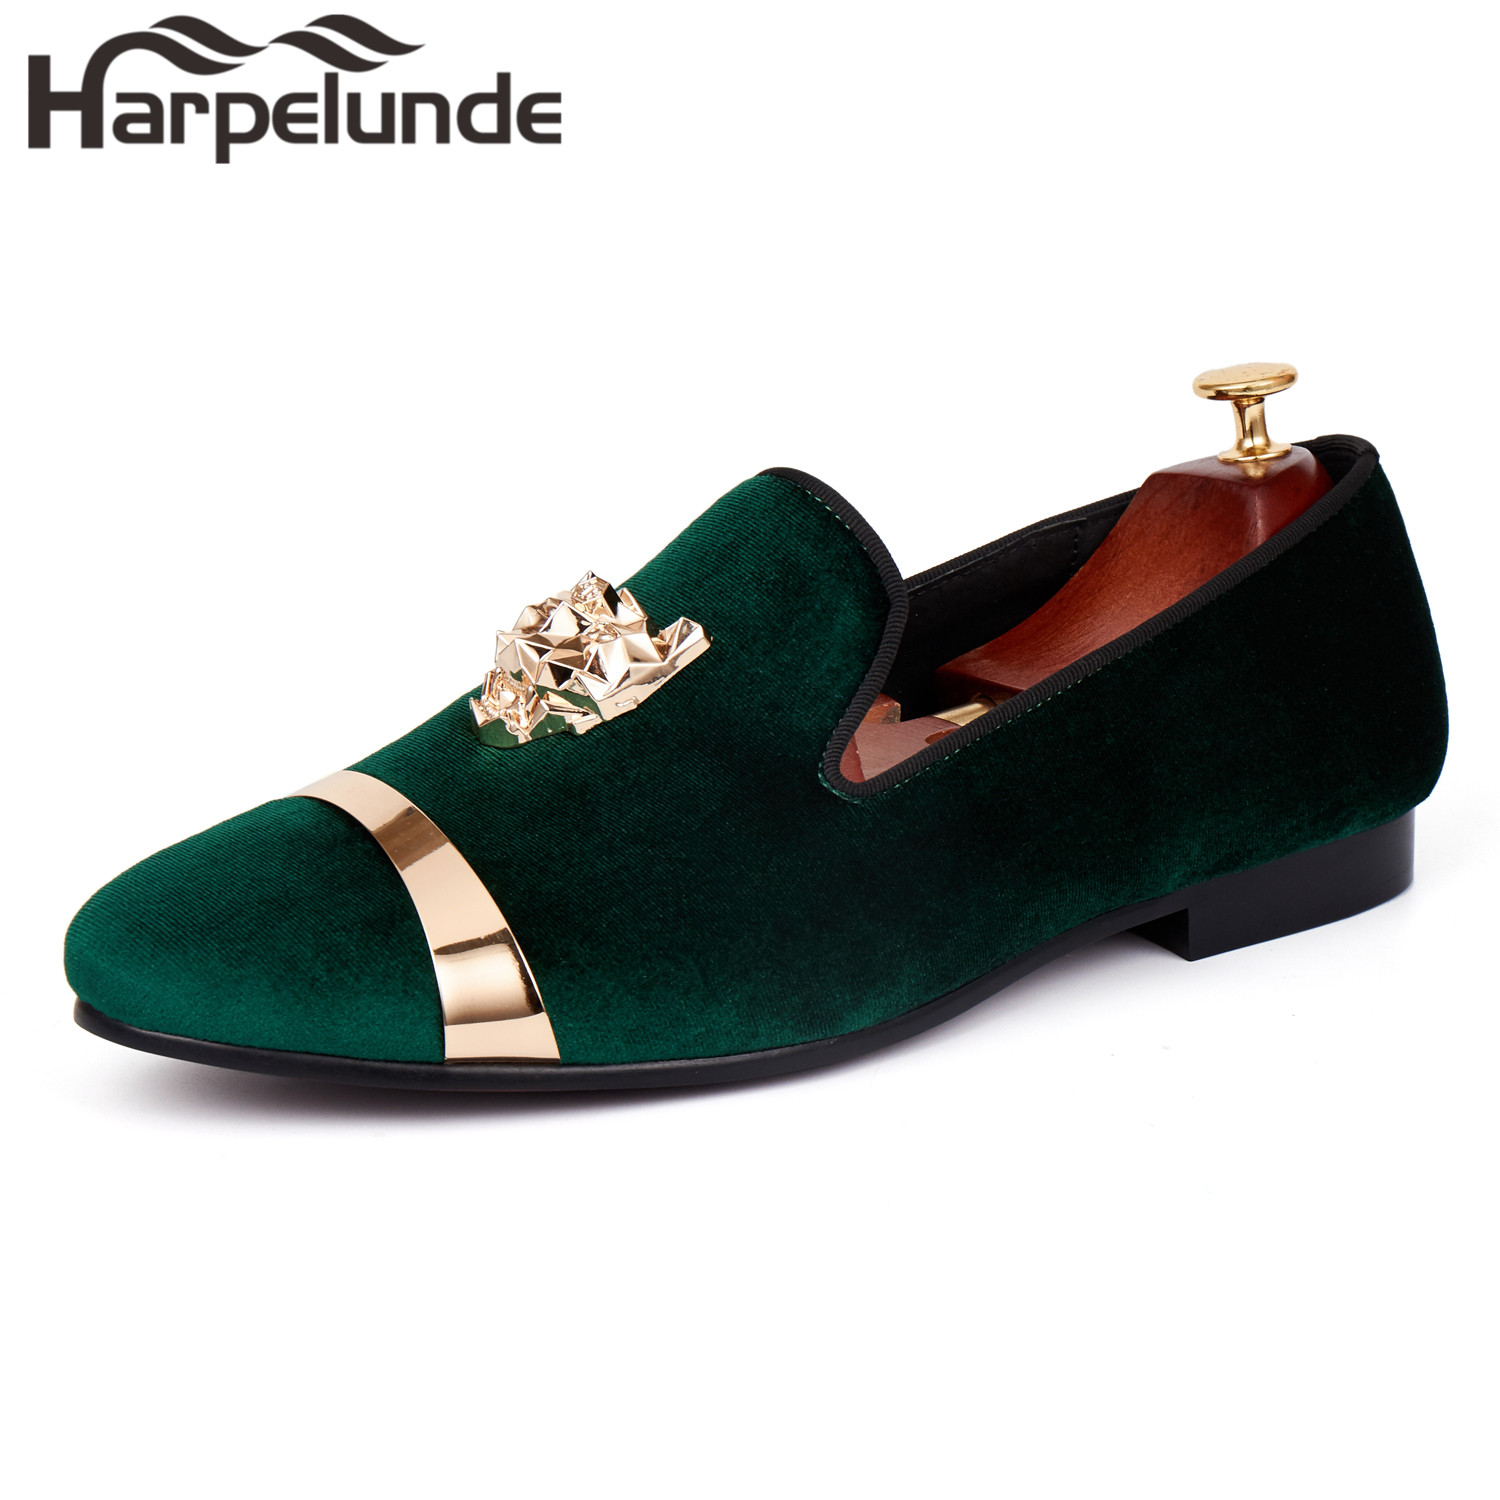 Harpelunde Animal Buckle Men Loafer Shoes Green Velvet Slippers With Gold Plate Size 6-14